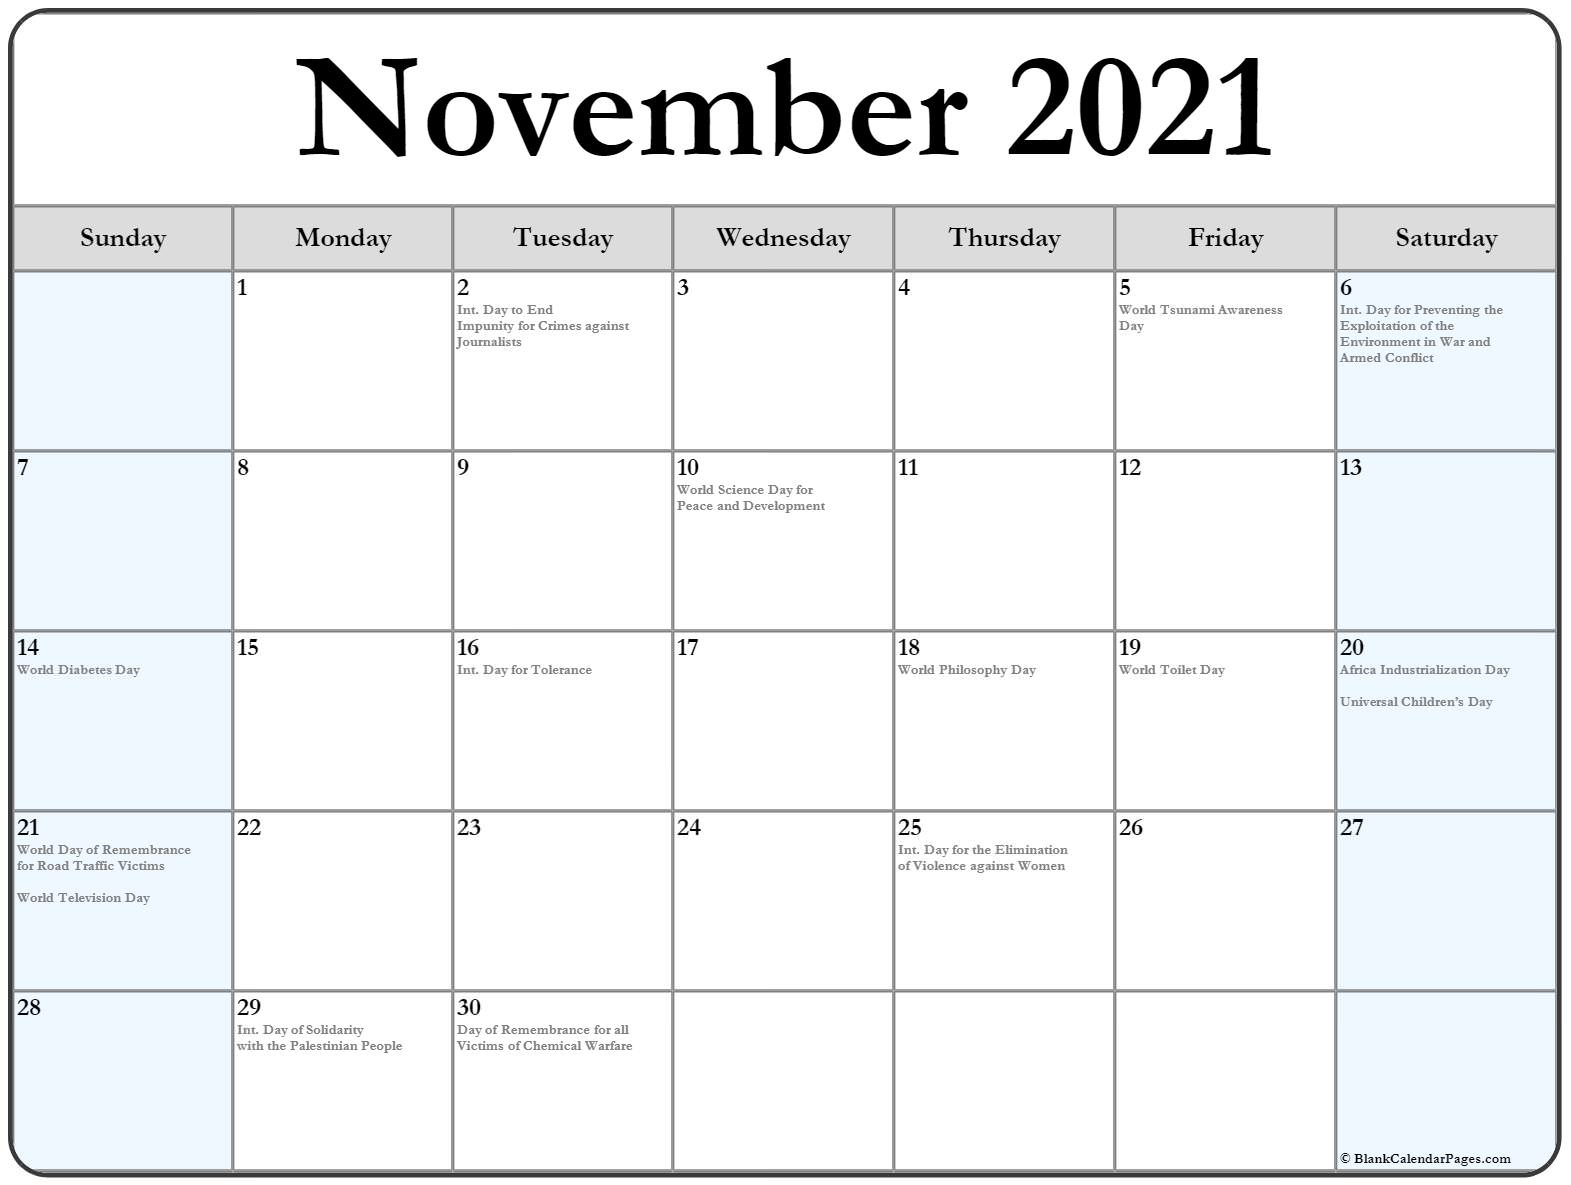 November 2021 with international holidays